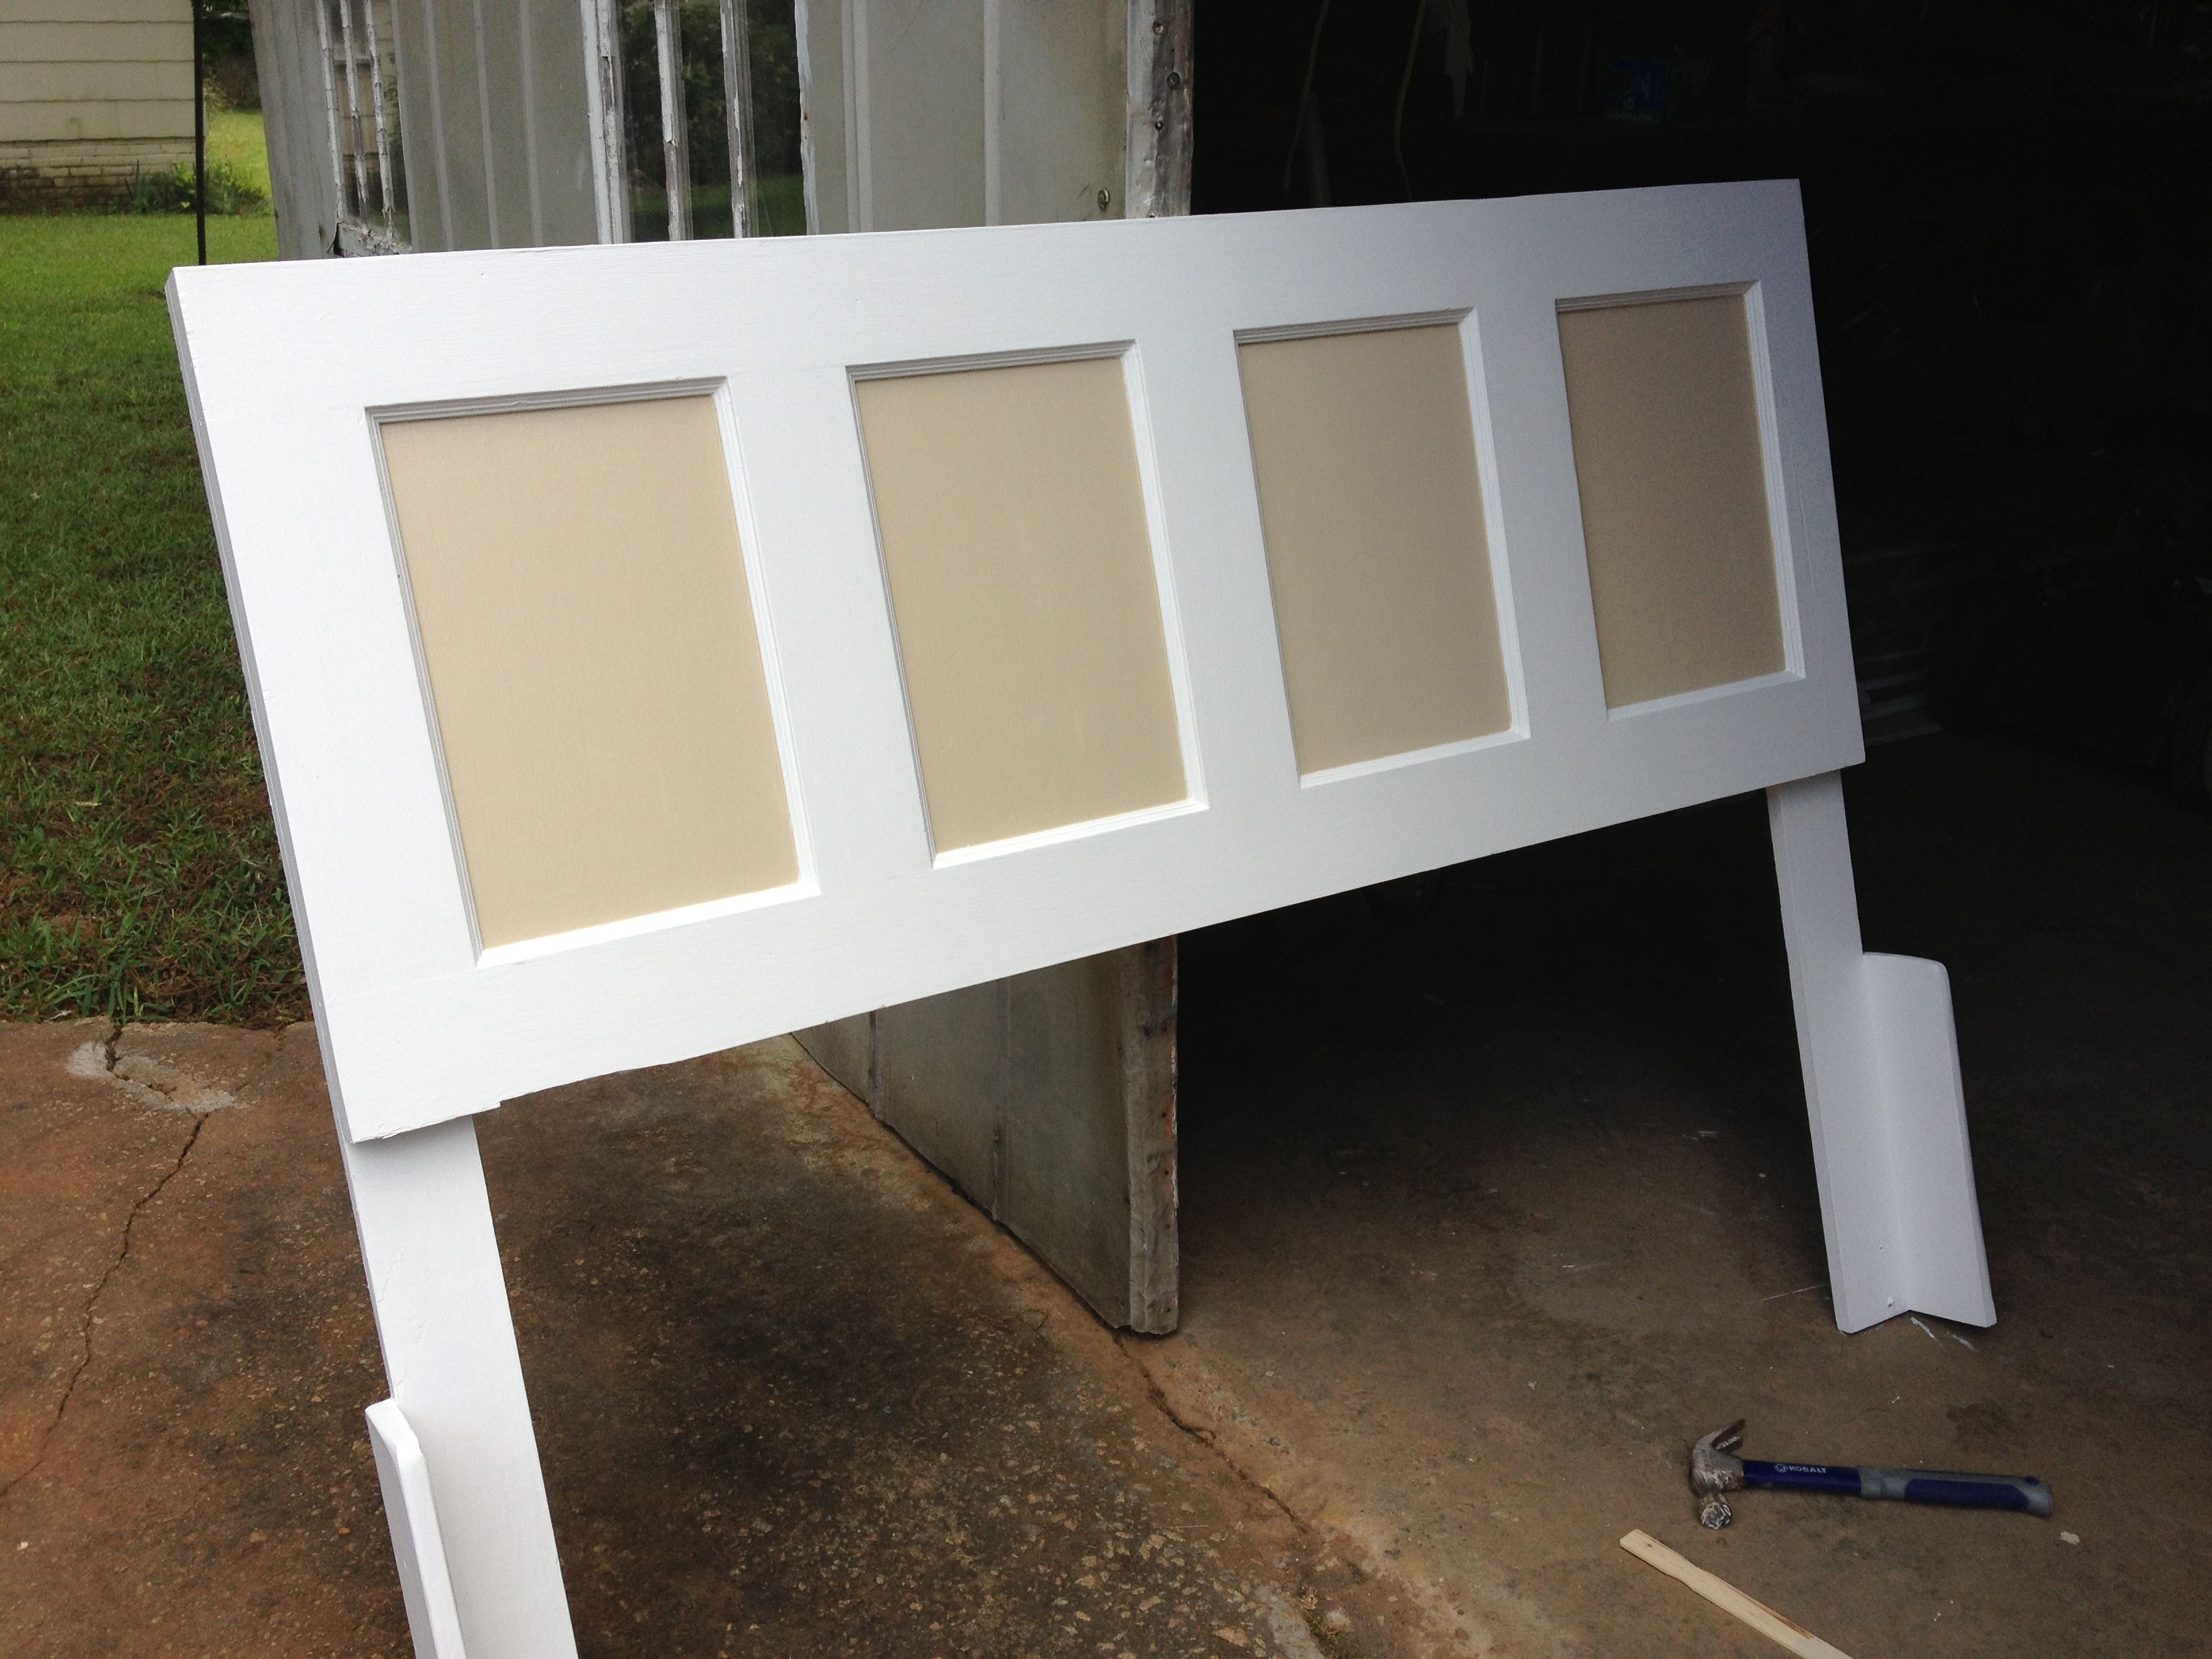 Diy headboard made from old door for the home pinterest - Headboard made from old door ...